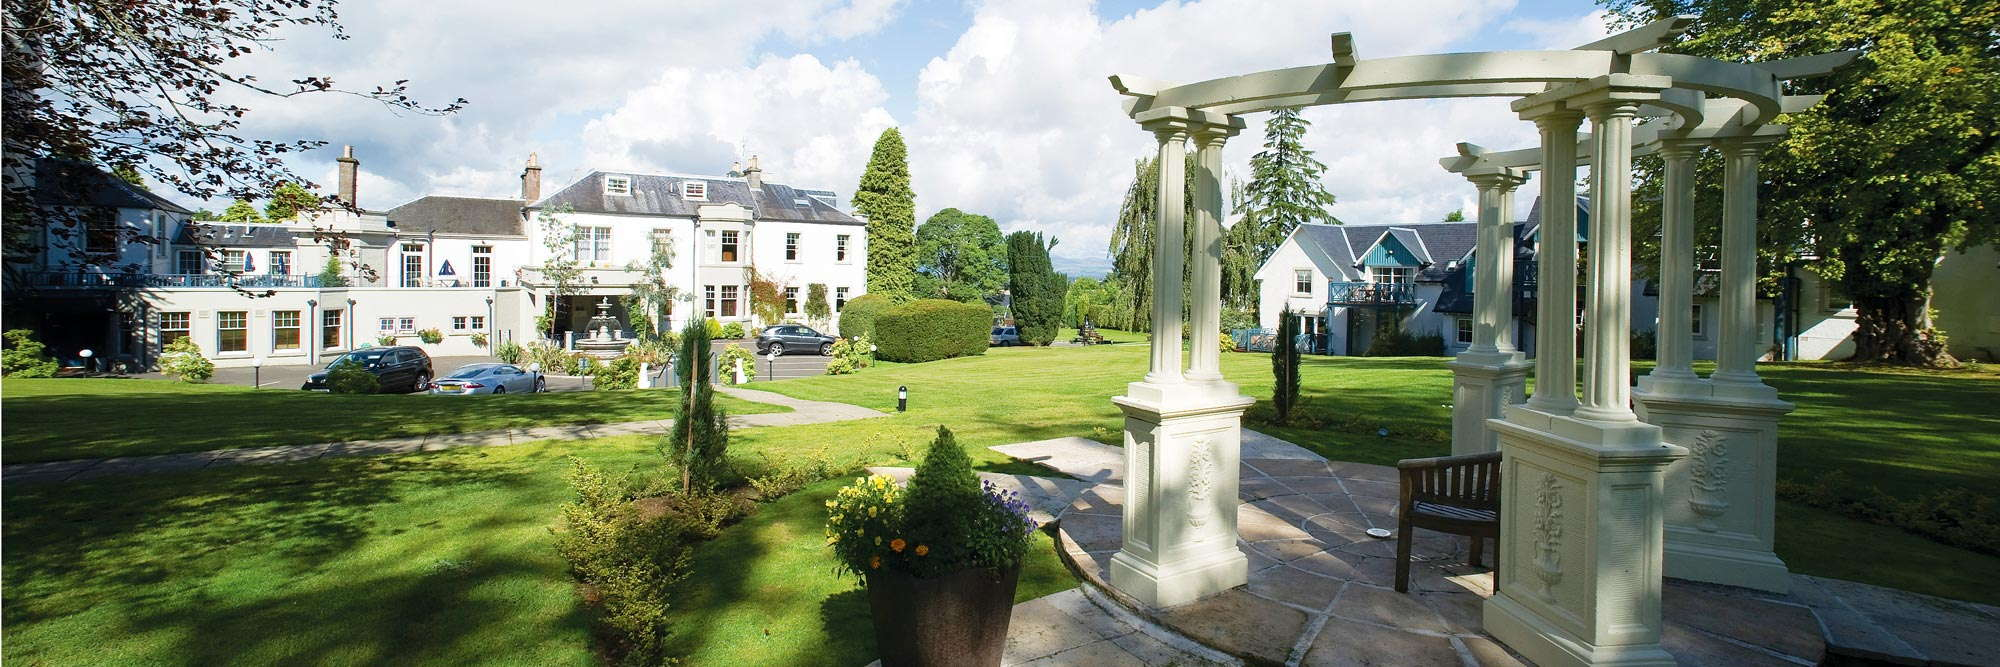 CLC Duchally Country Estate is considered one of the best hotels in Scotland